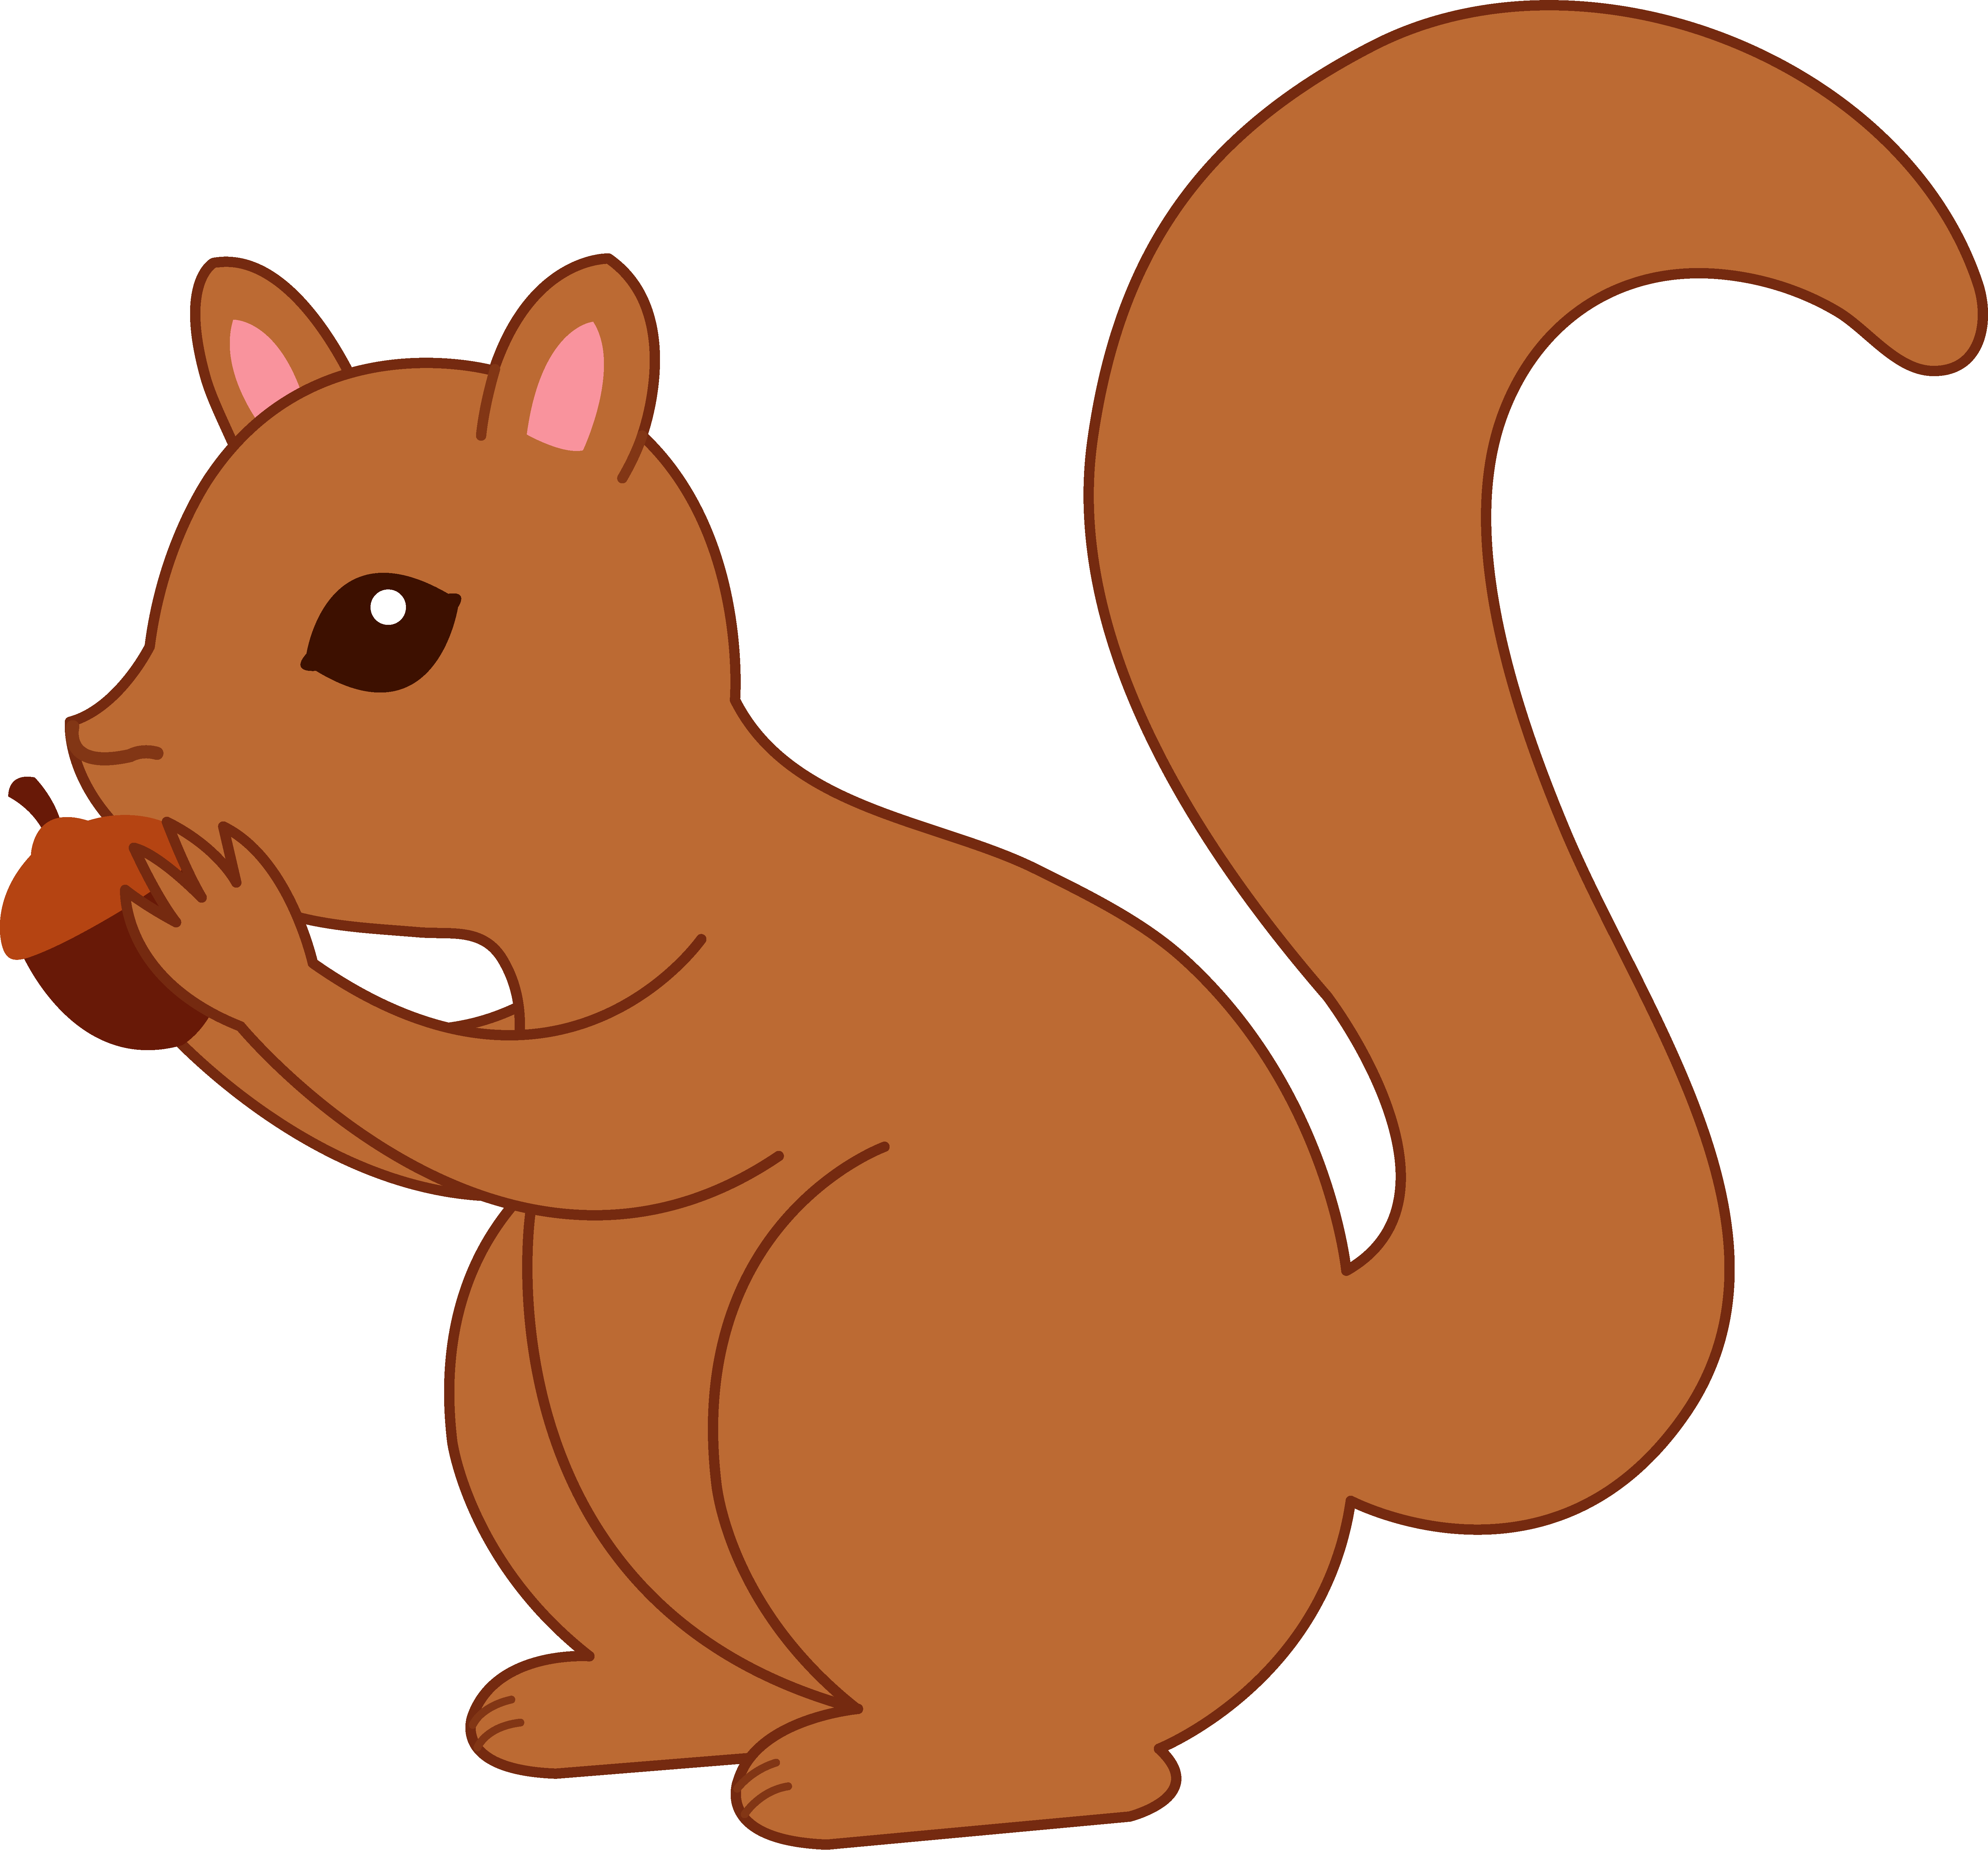 png royalty free library Chipmunk clipart cute drawing. Cartoon squirrel